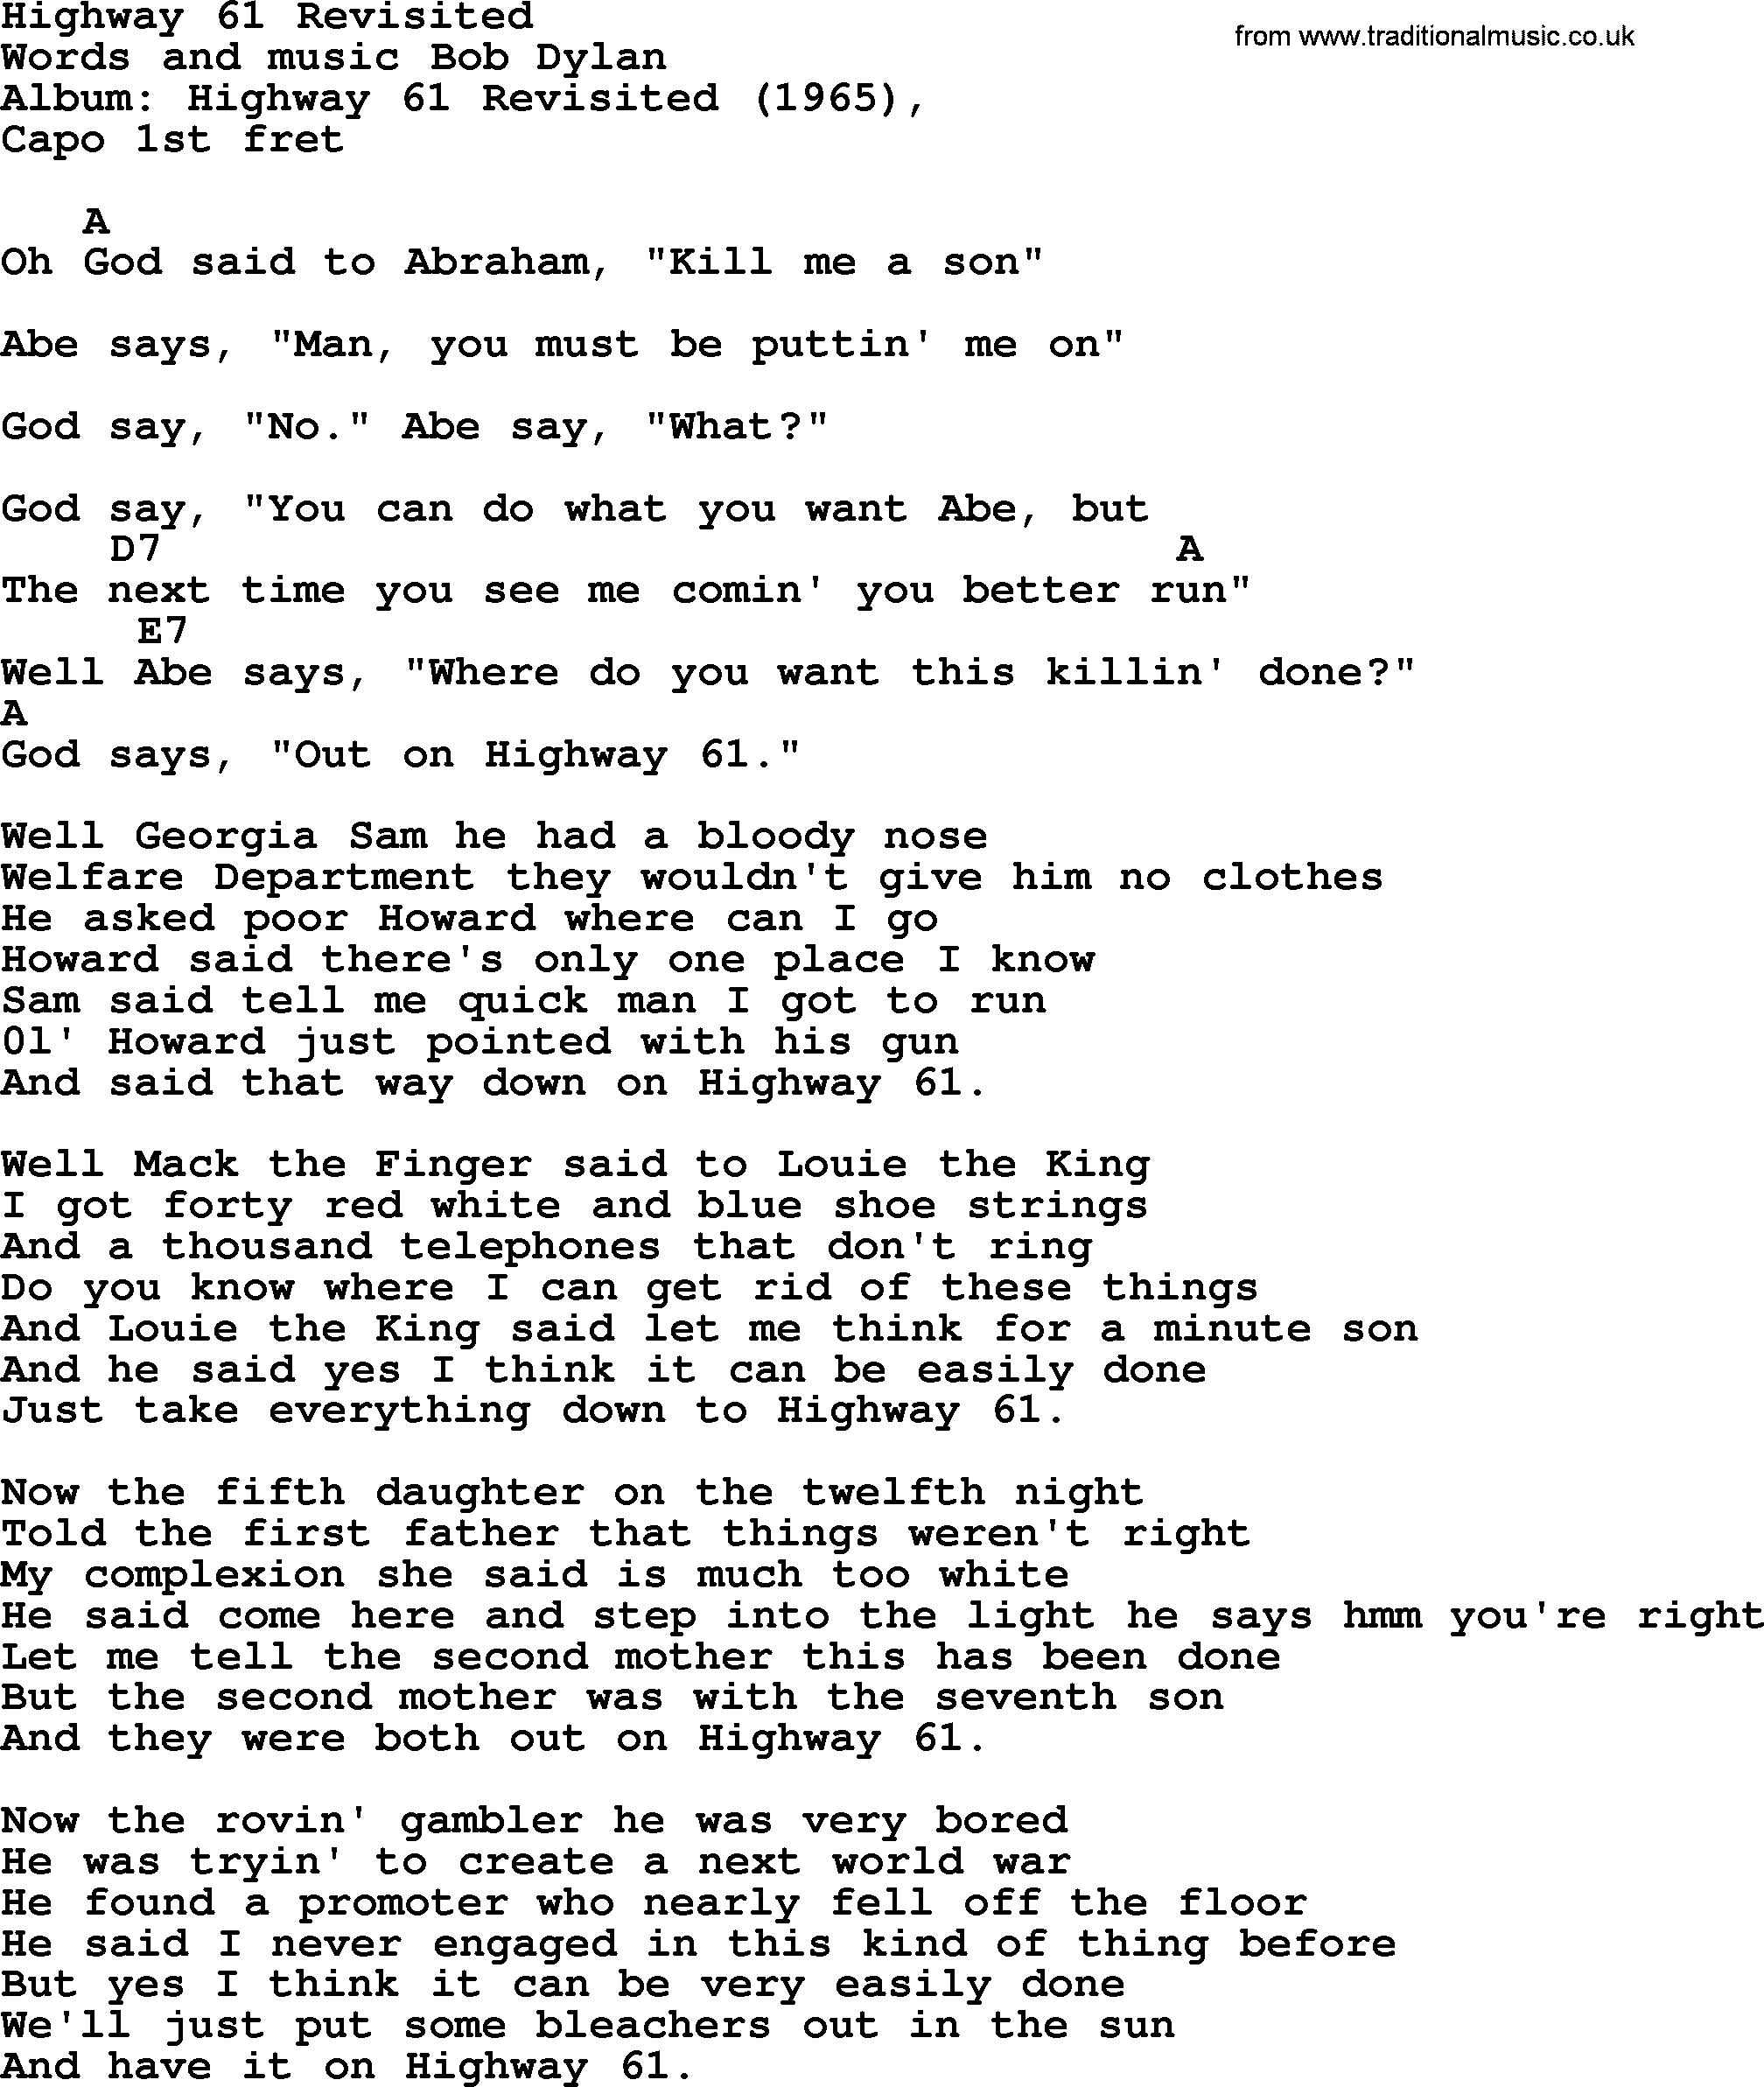 Bob Dylan Song Highway 61 Revisited Lyrics And Chords